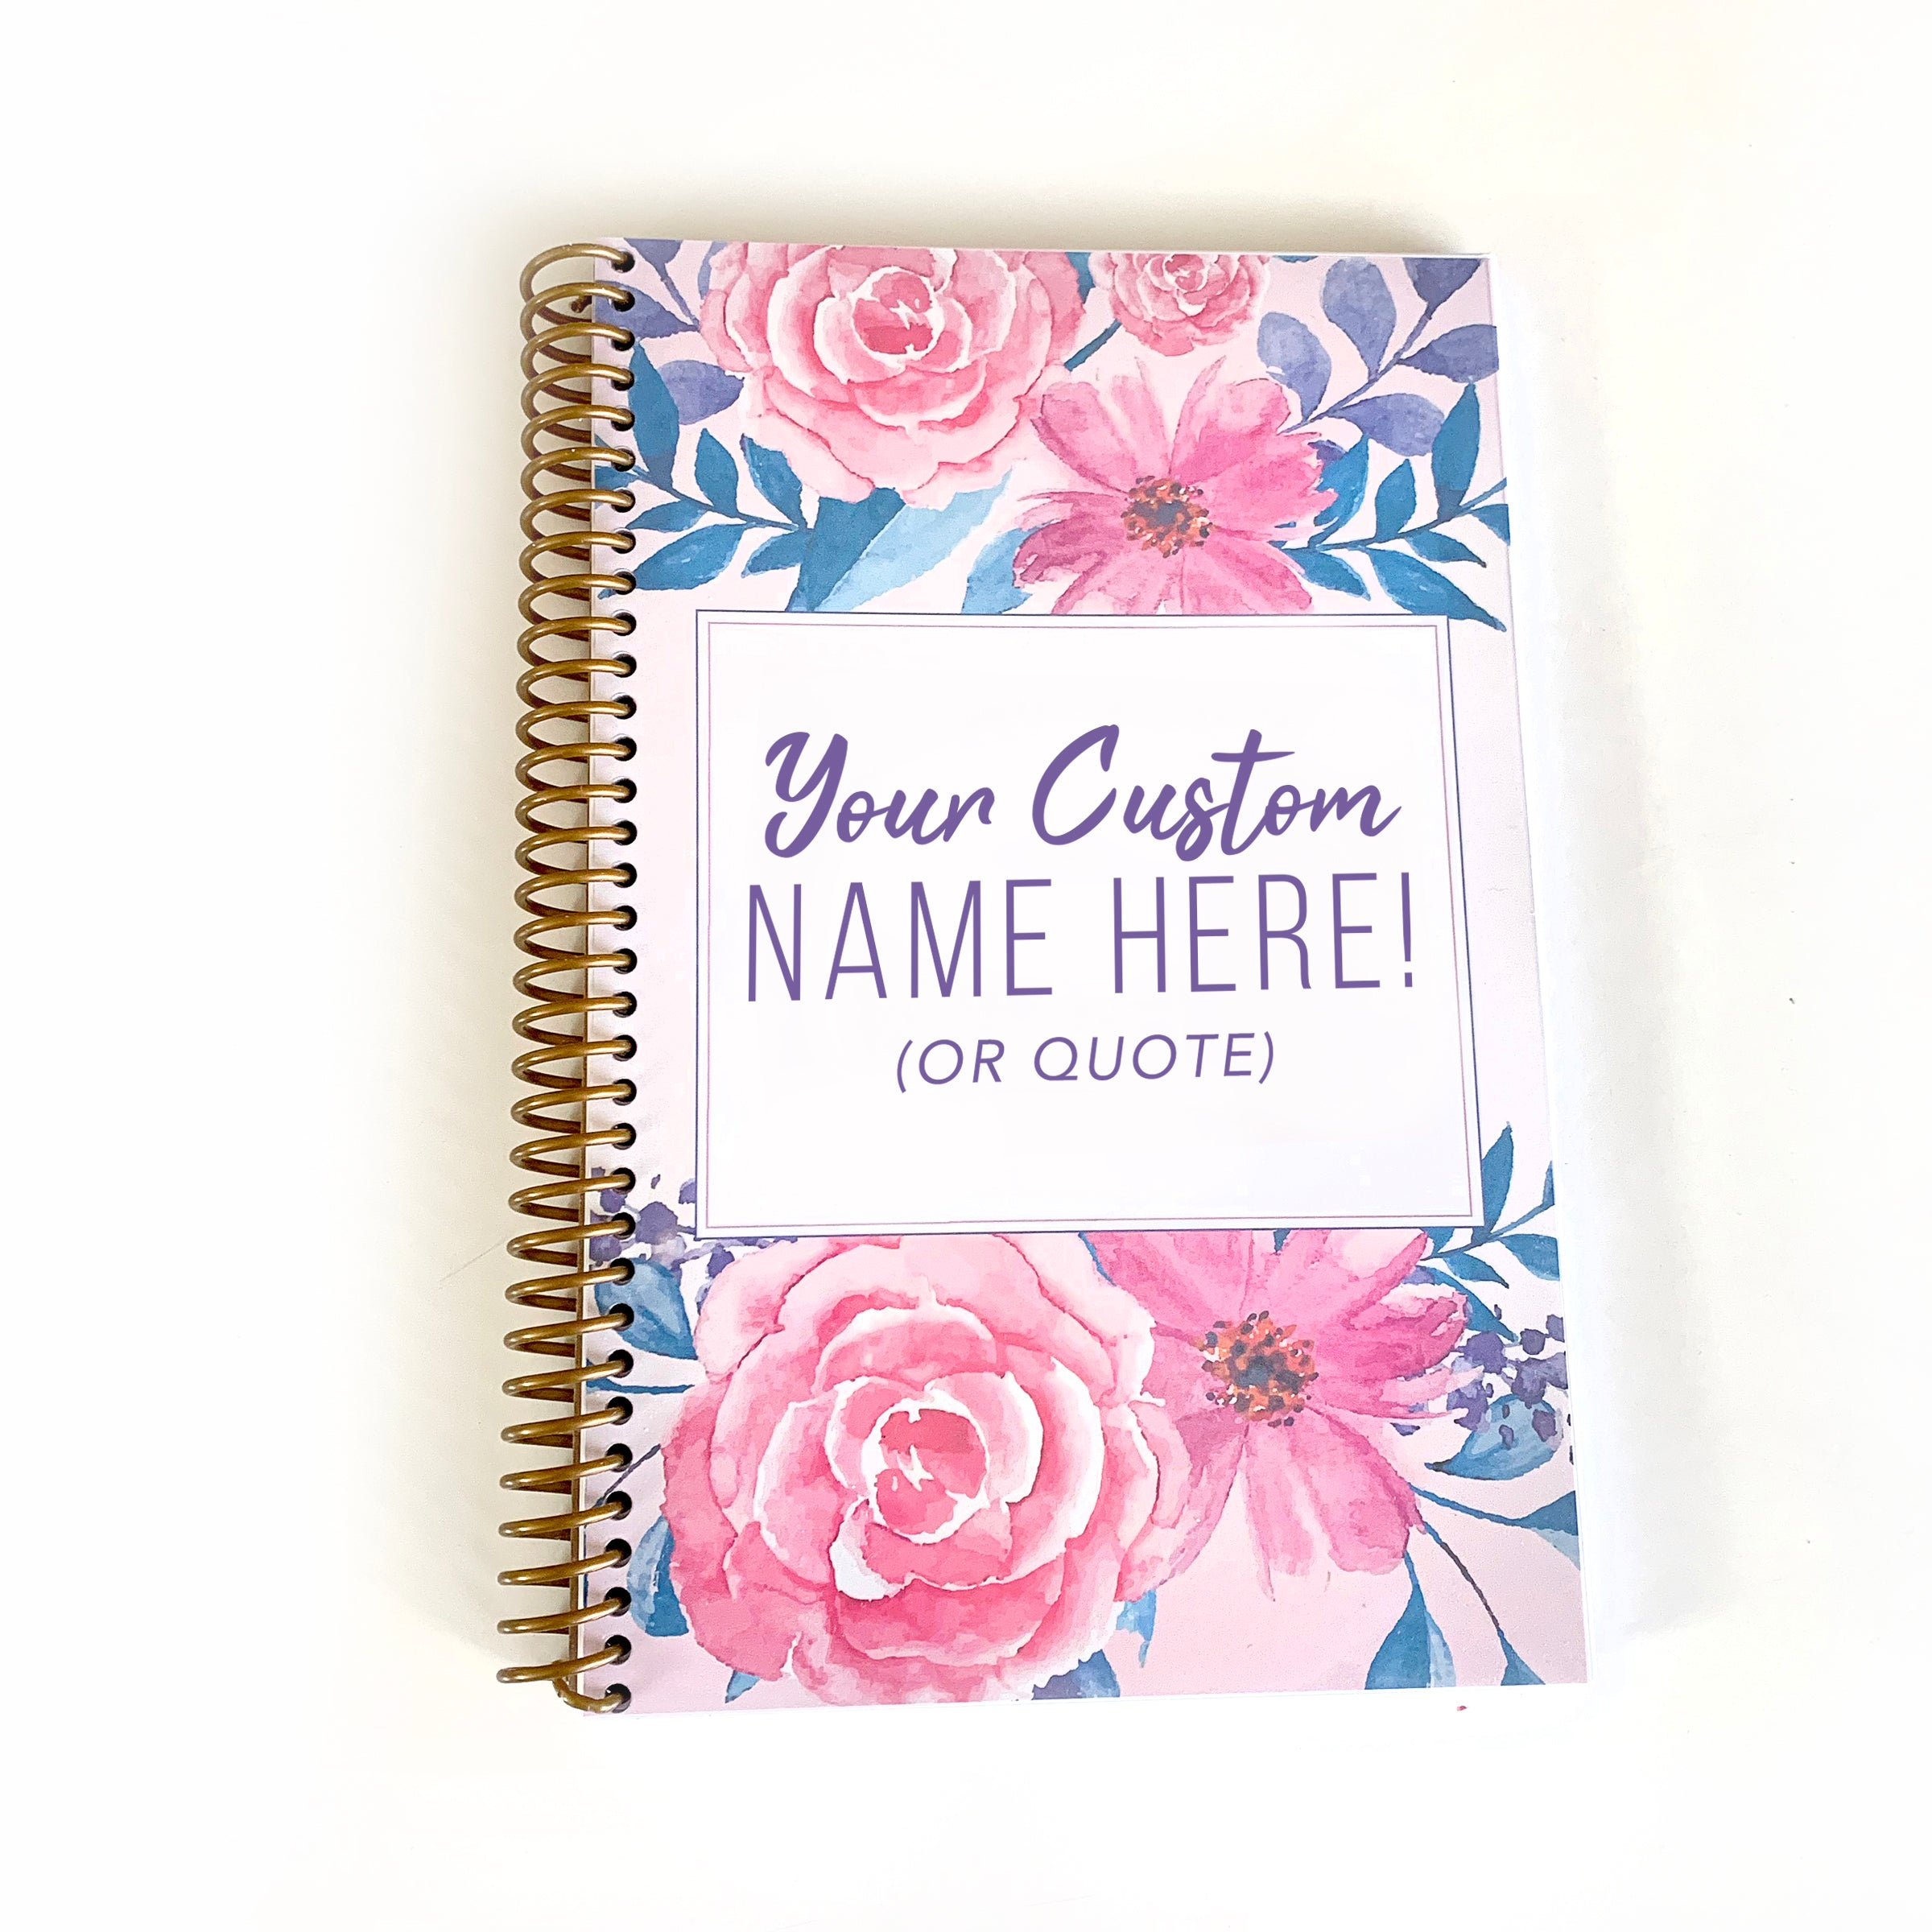 Custom Gratitude Journal Gold Spiral Floral